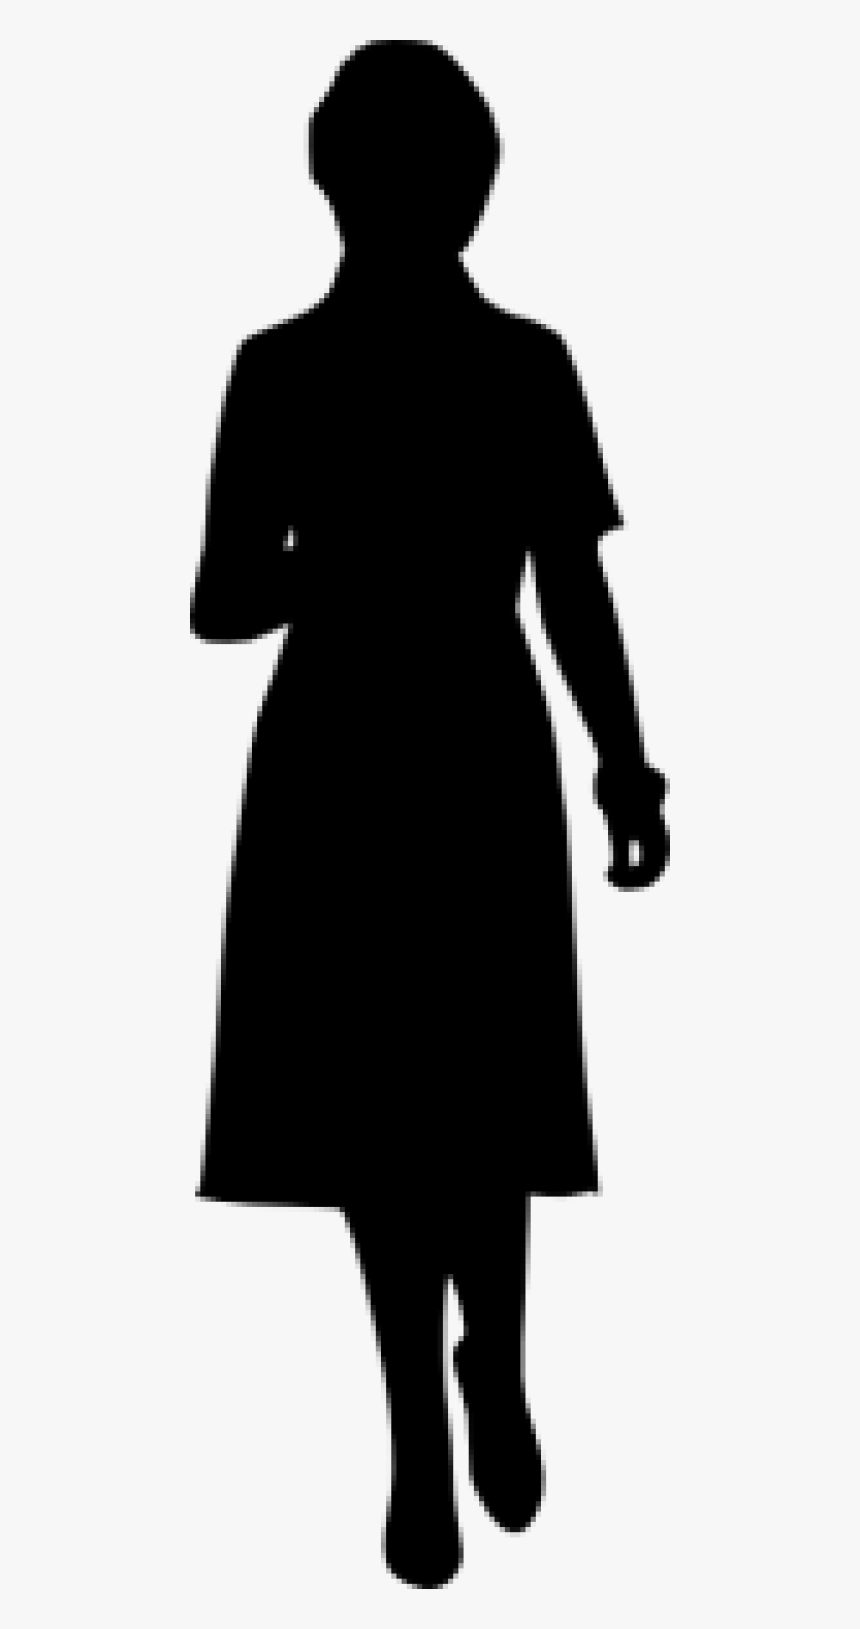 Free Png Woman Silhouette Png - Silhouette Of A Boy Graduate, Transparent Png, Free Download